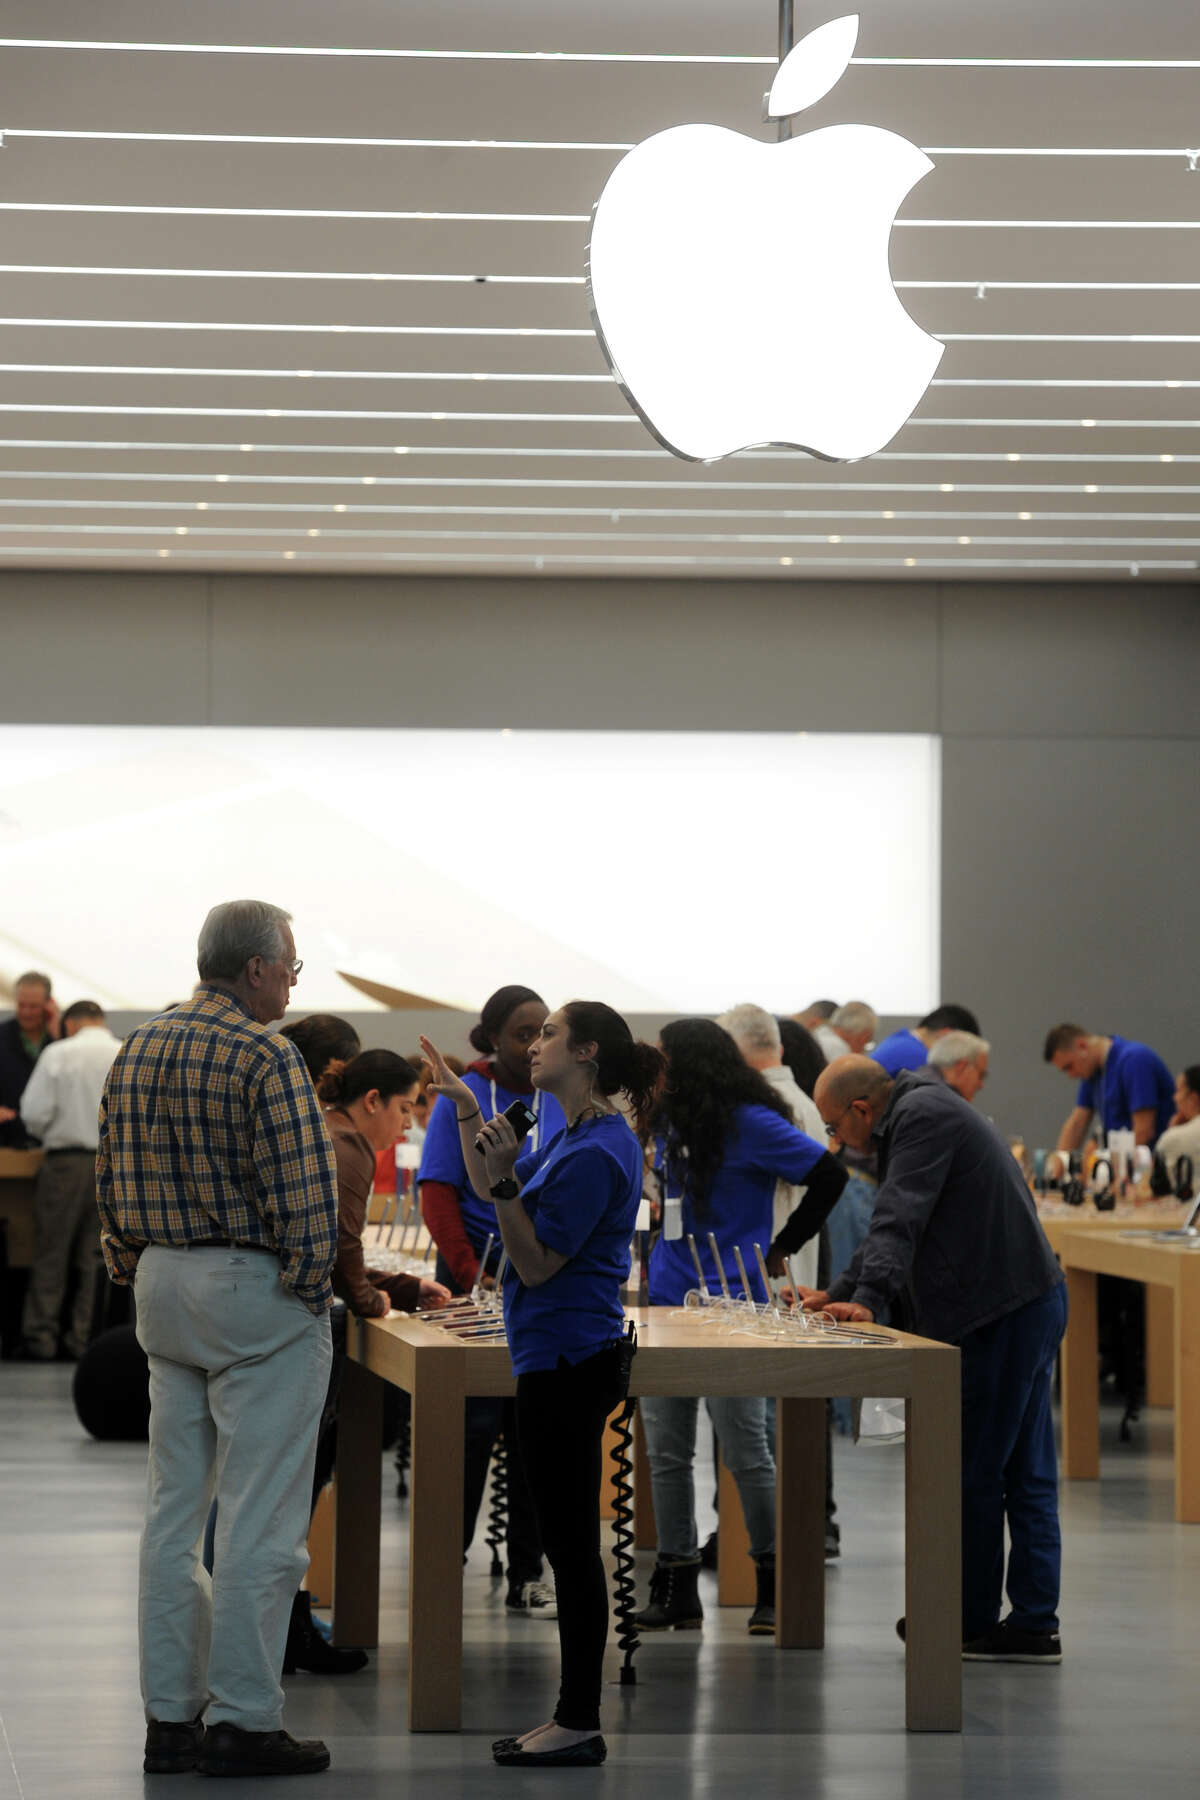 The new Apple Store in the Westfield Trumbull Mall, in Trumbull, Conn. Oct. 16,2014.